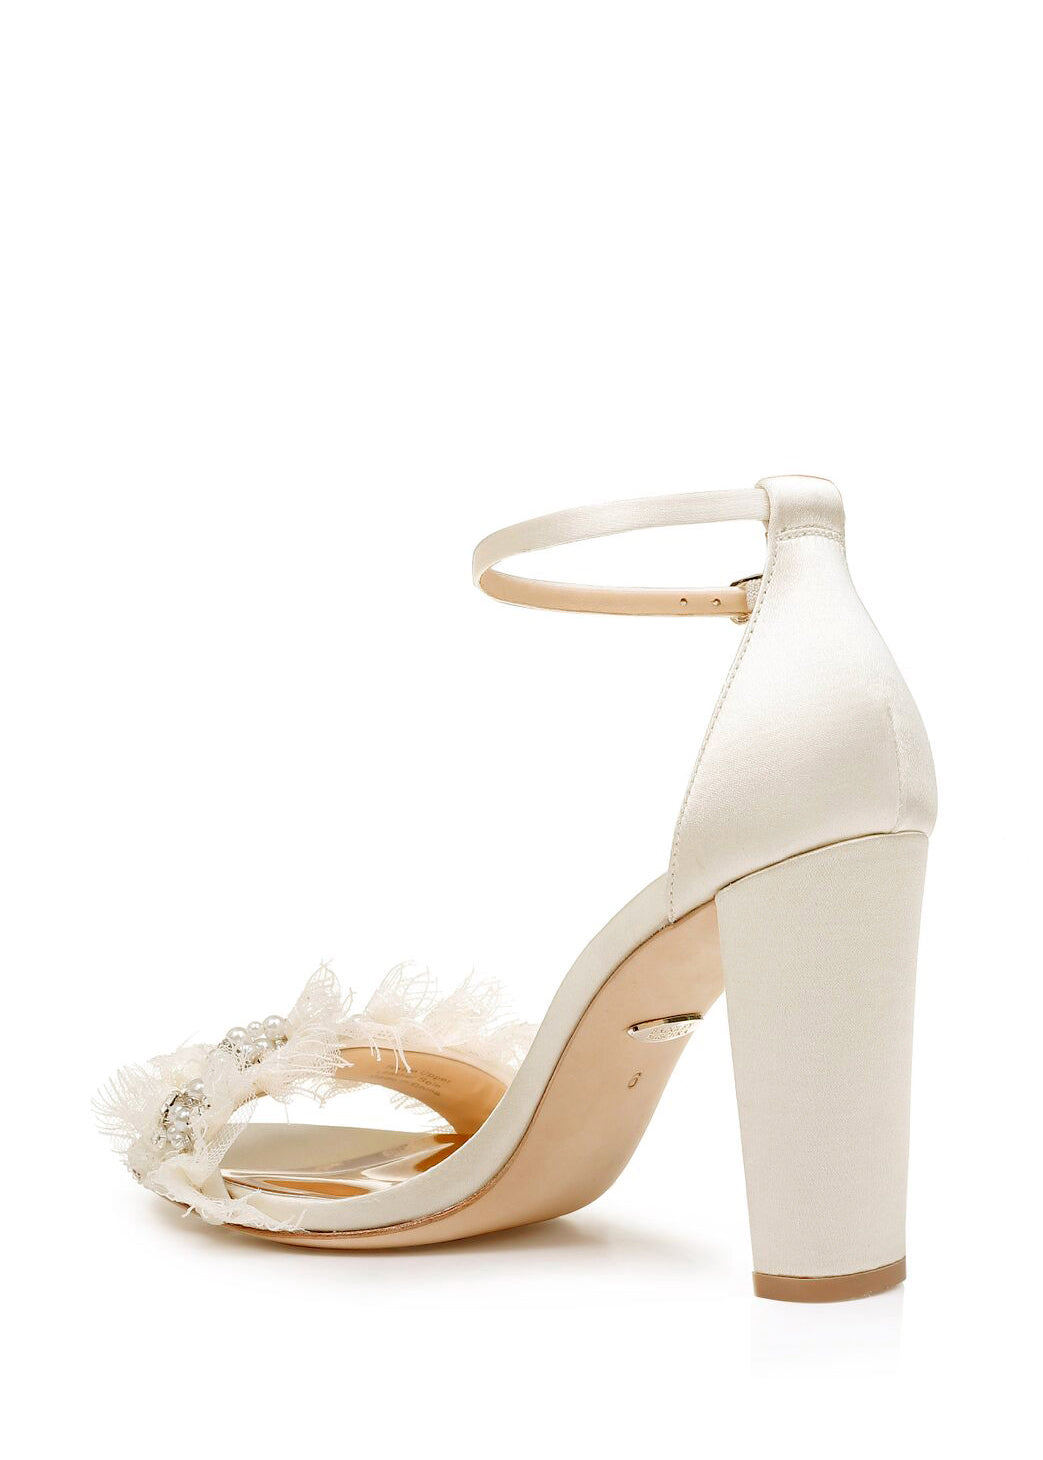 Fleur - New, Shoes, Badgley Mischka - Eternal Bridal